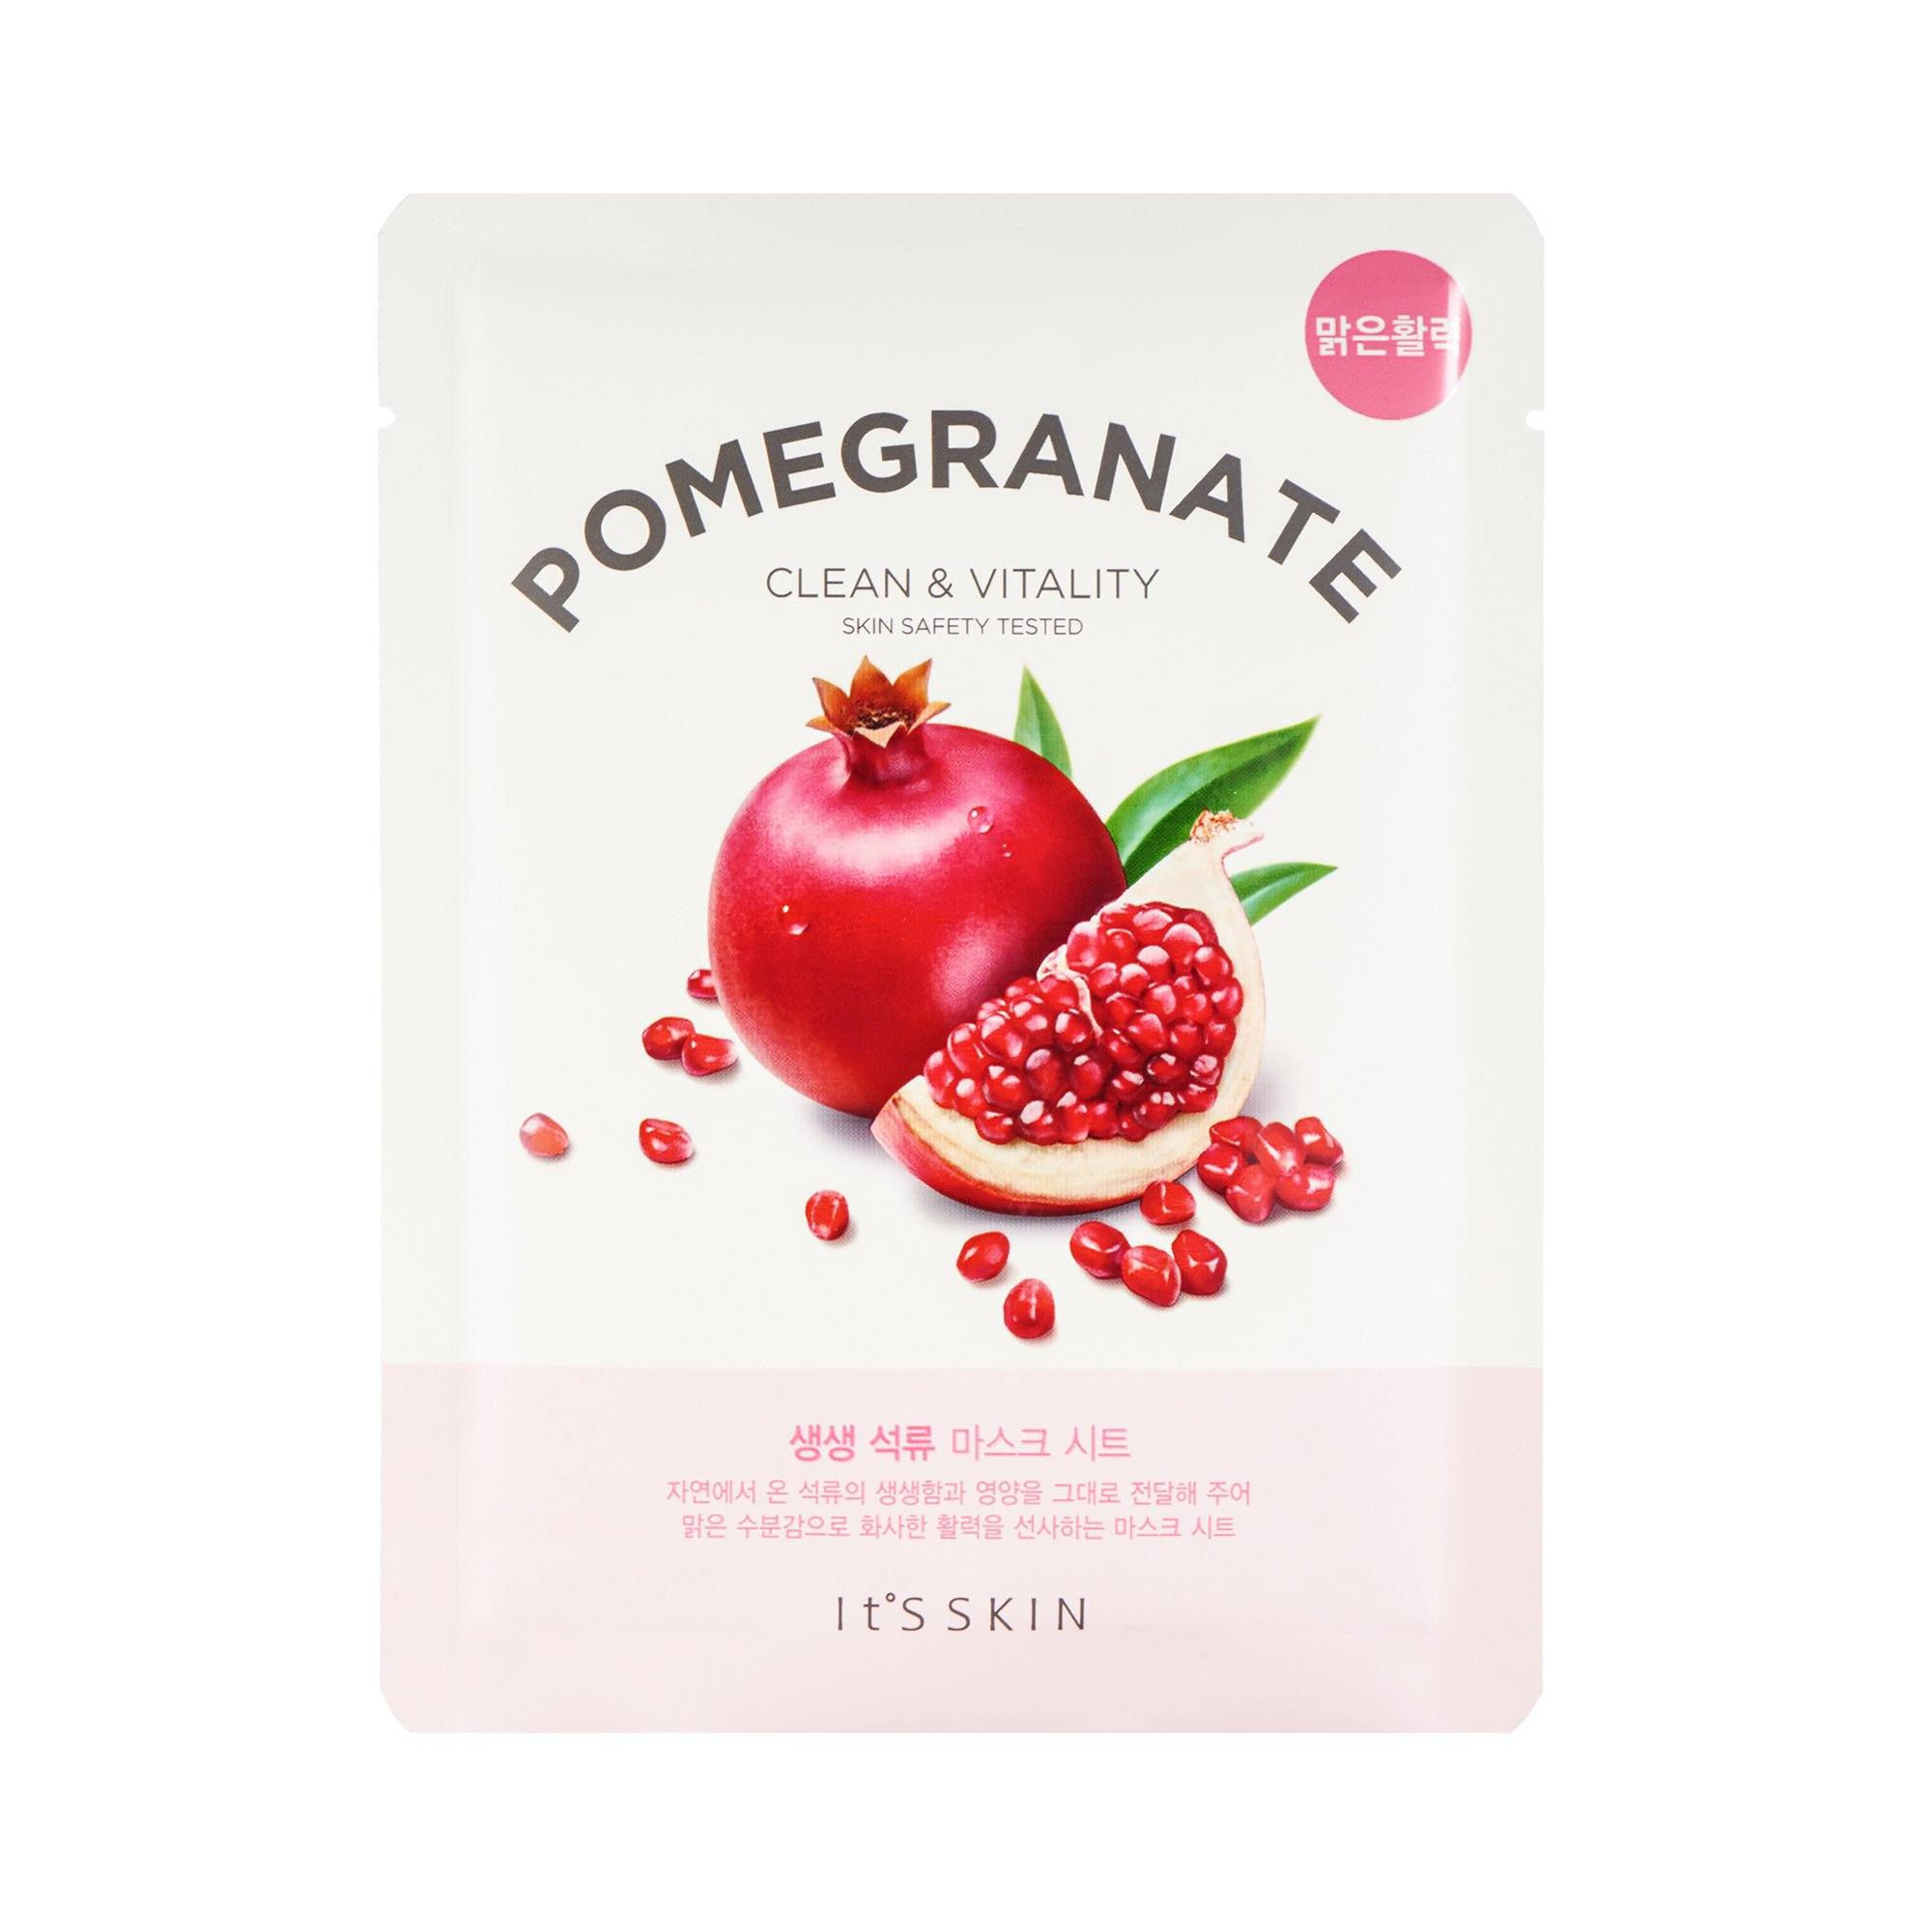 Health & Beauty > Personal Care > Cosmetics > Skin Care > Compressed Skin Care Mask Sheets - The Fresh Mask Sheet Pomegranate Maska W Płachcie